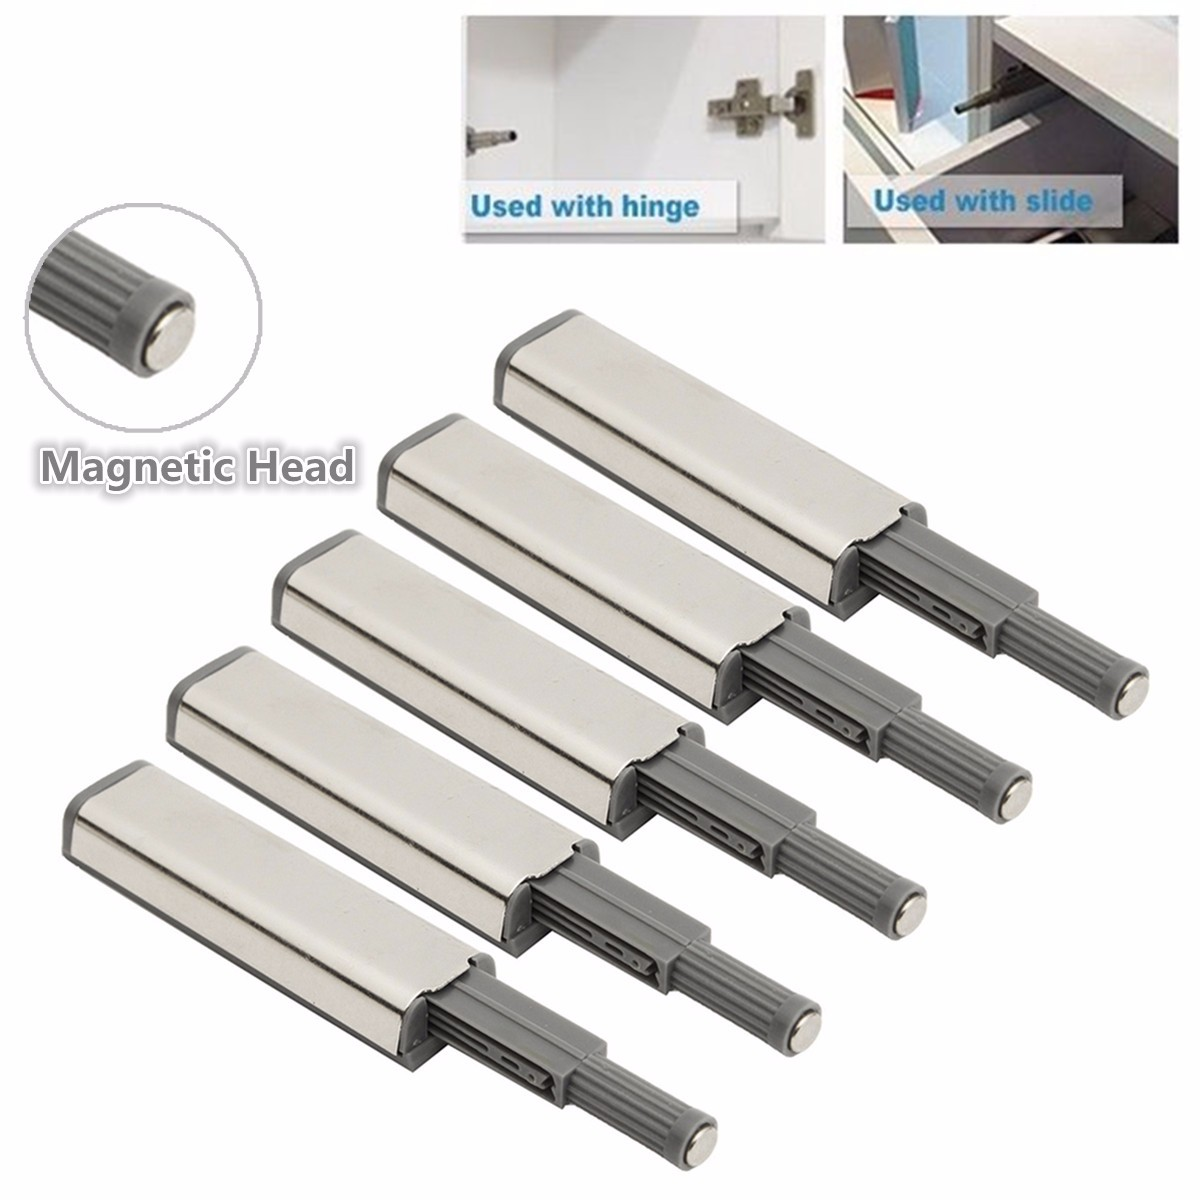 5pcs Door Catch Latch Open System Kitchen Cabinet Cupboard Drawer Buffer Soft Quiet Closer Damper Buffers Door Stopper Magnetic